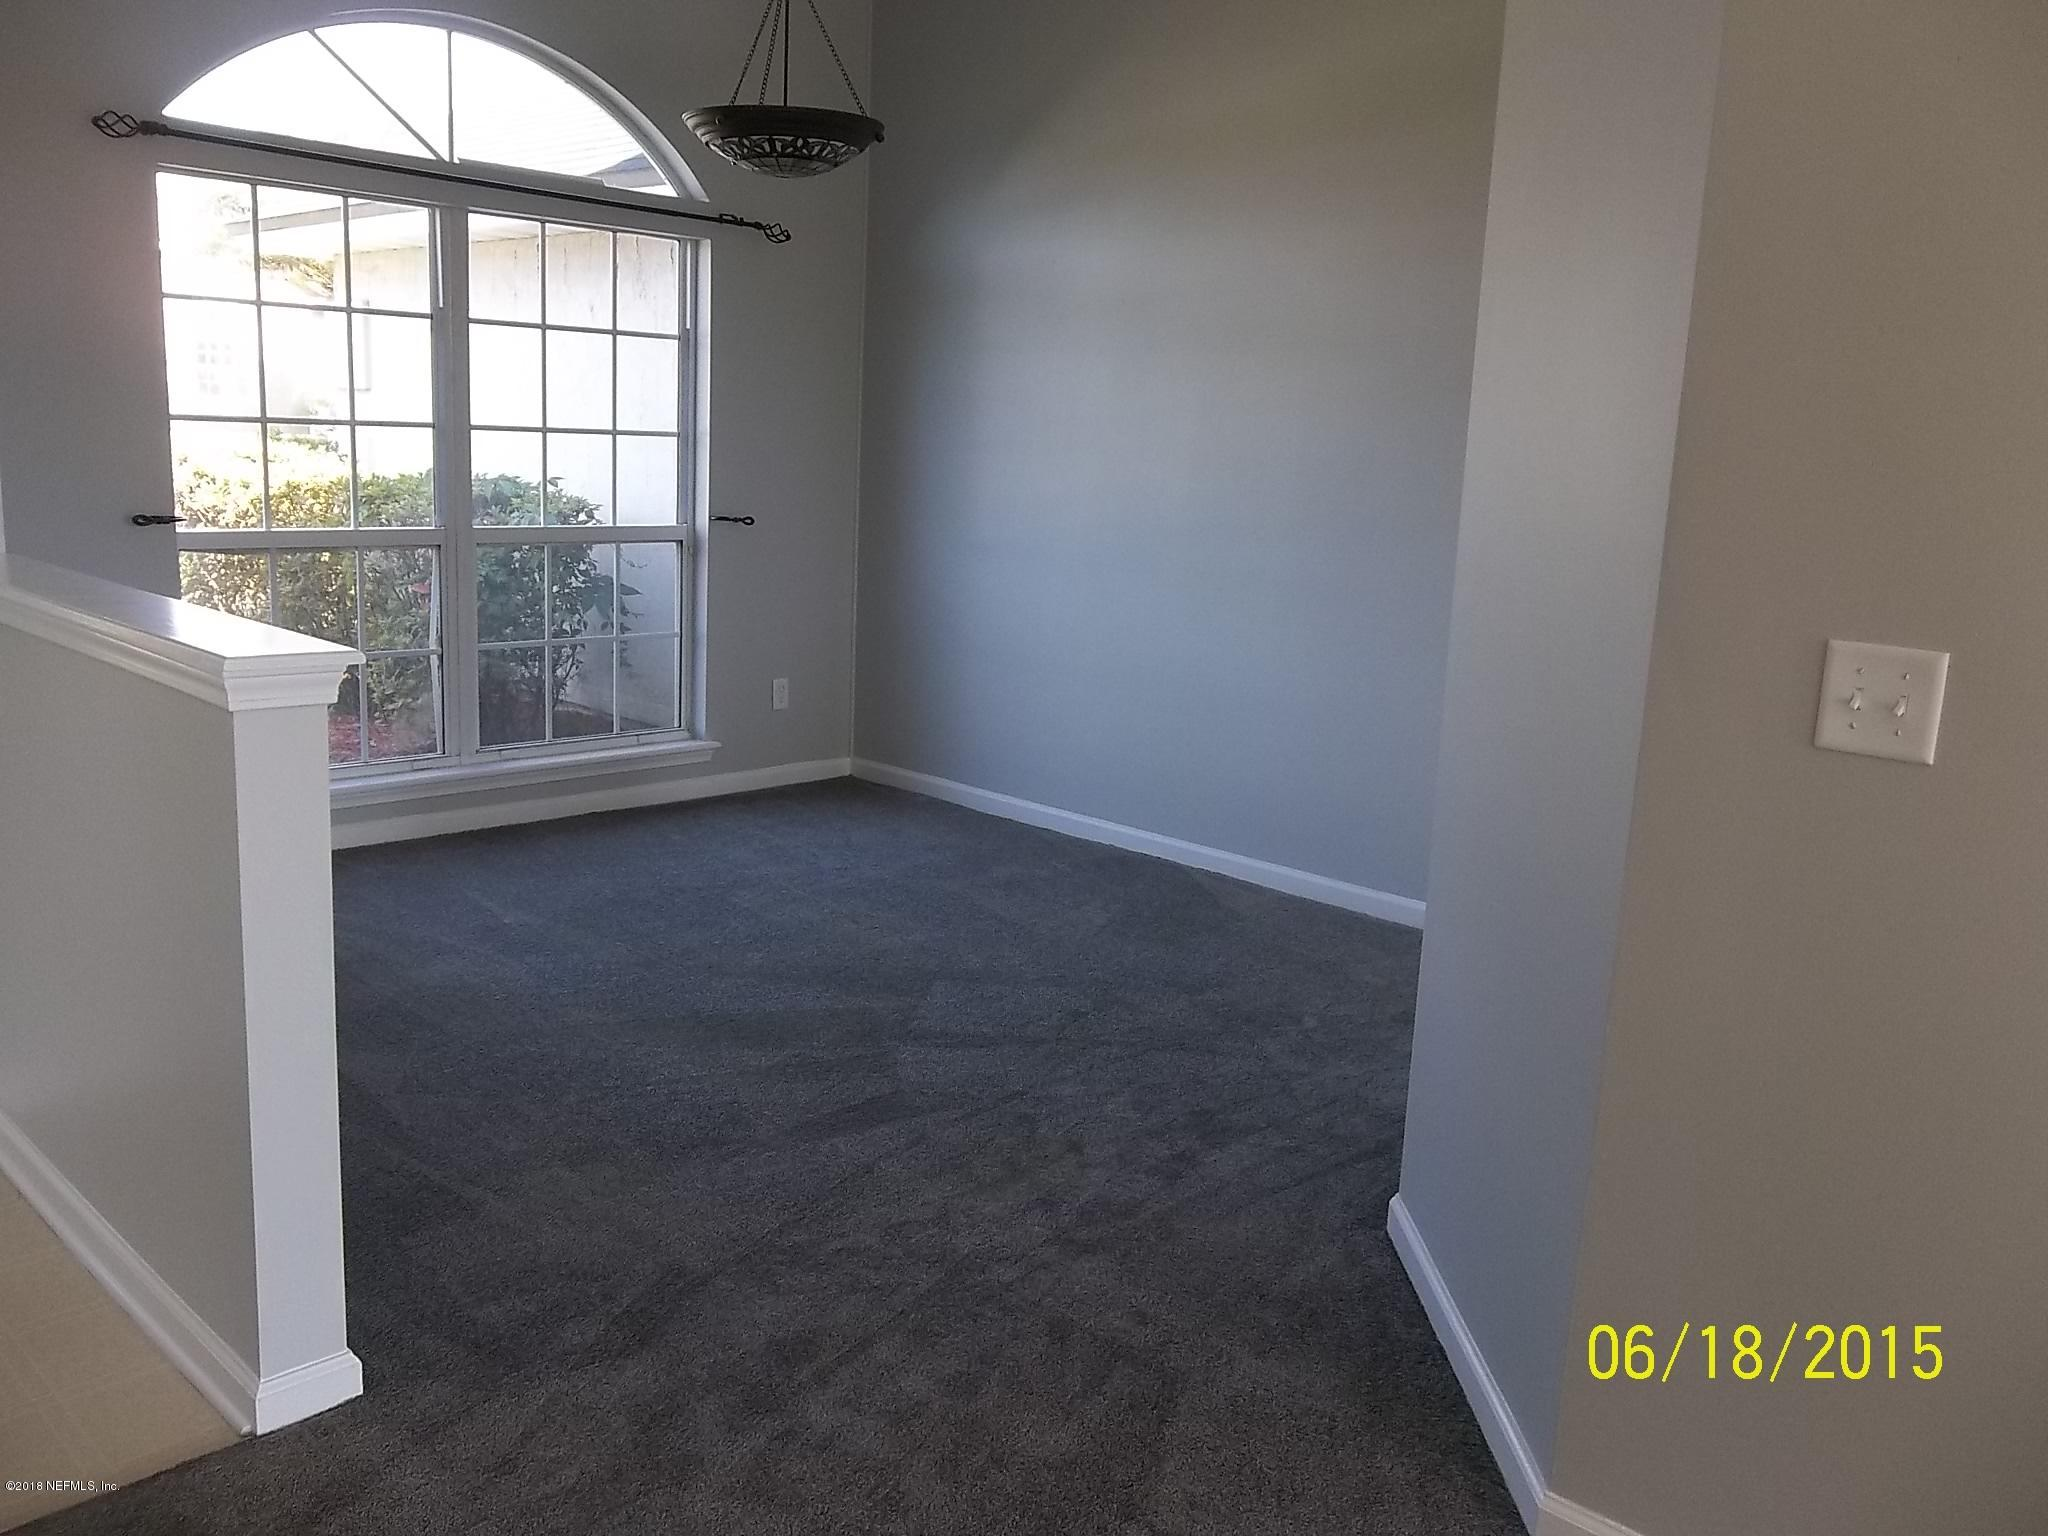 2154 KNOTTINGHAM TRACE, JACKSONVILLE, FLORIDA 32246, 3 Bedrooms Bedrooms, ,2 BathroomsBathrooms,Residential - single family,For sale,KNOTTINGHAM TRACE,953399